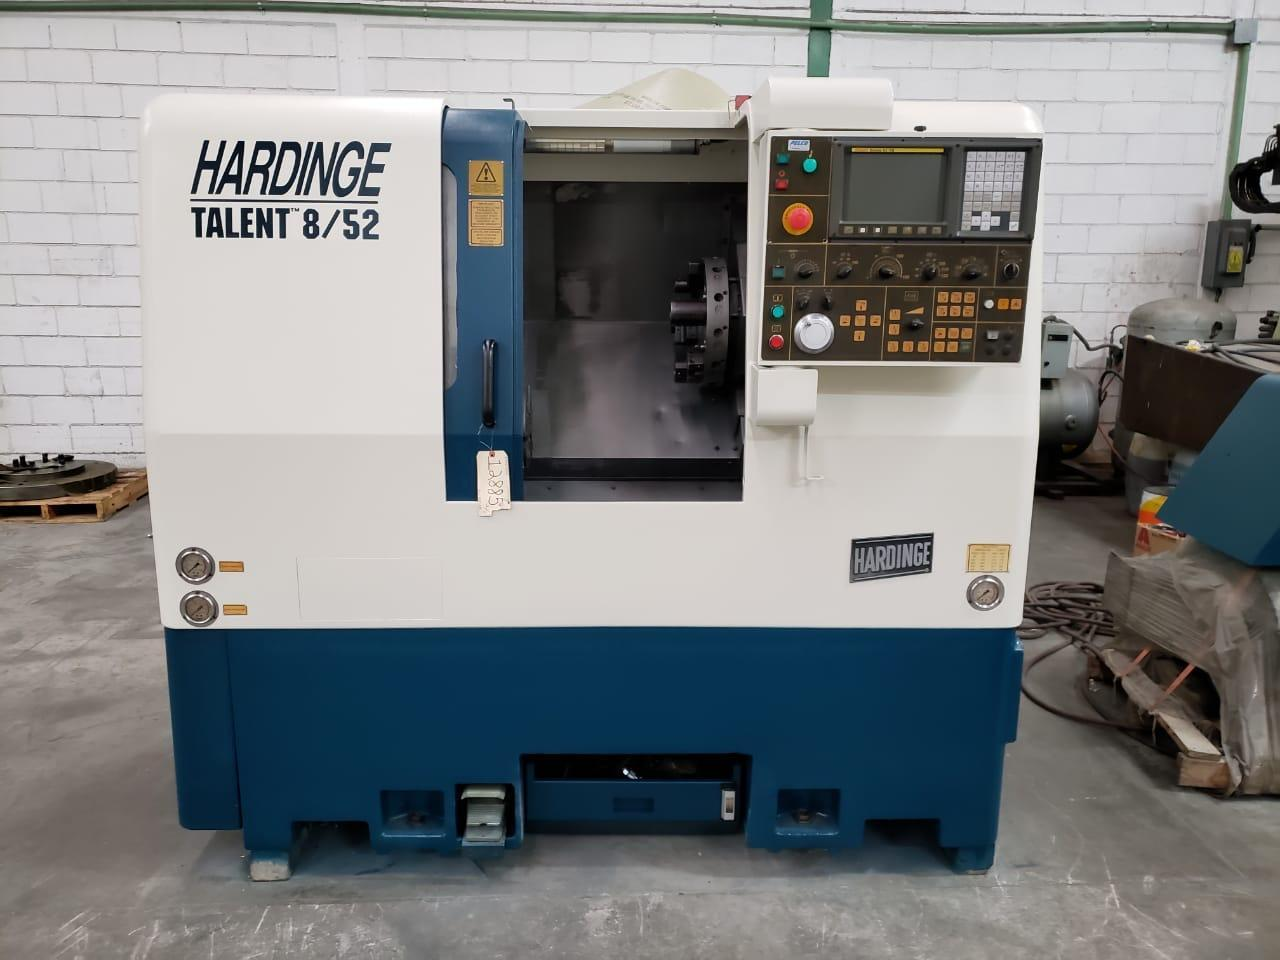 2004 HARDINGE Talent 8/52 - CNC Horizontal Lathe